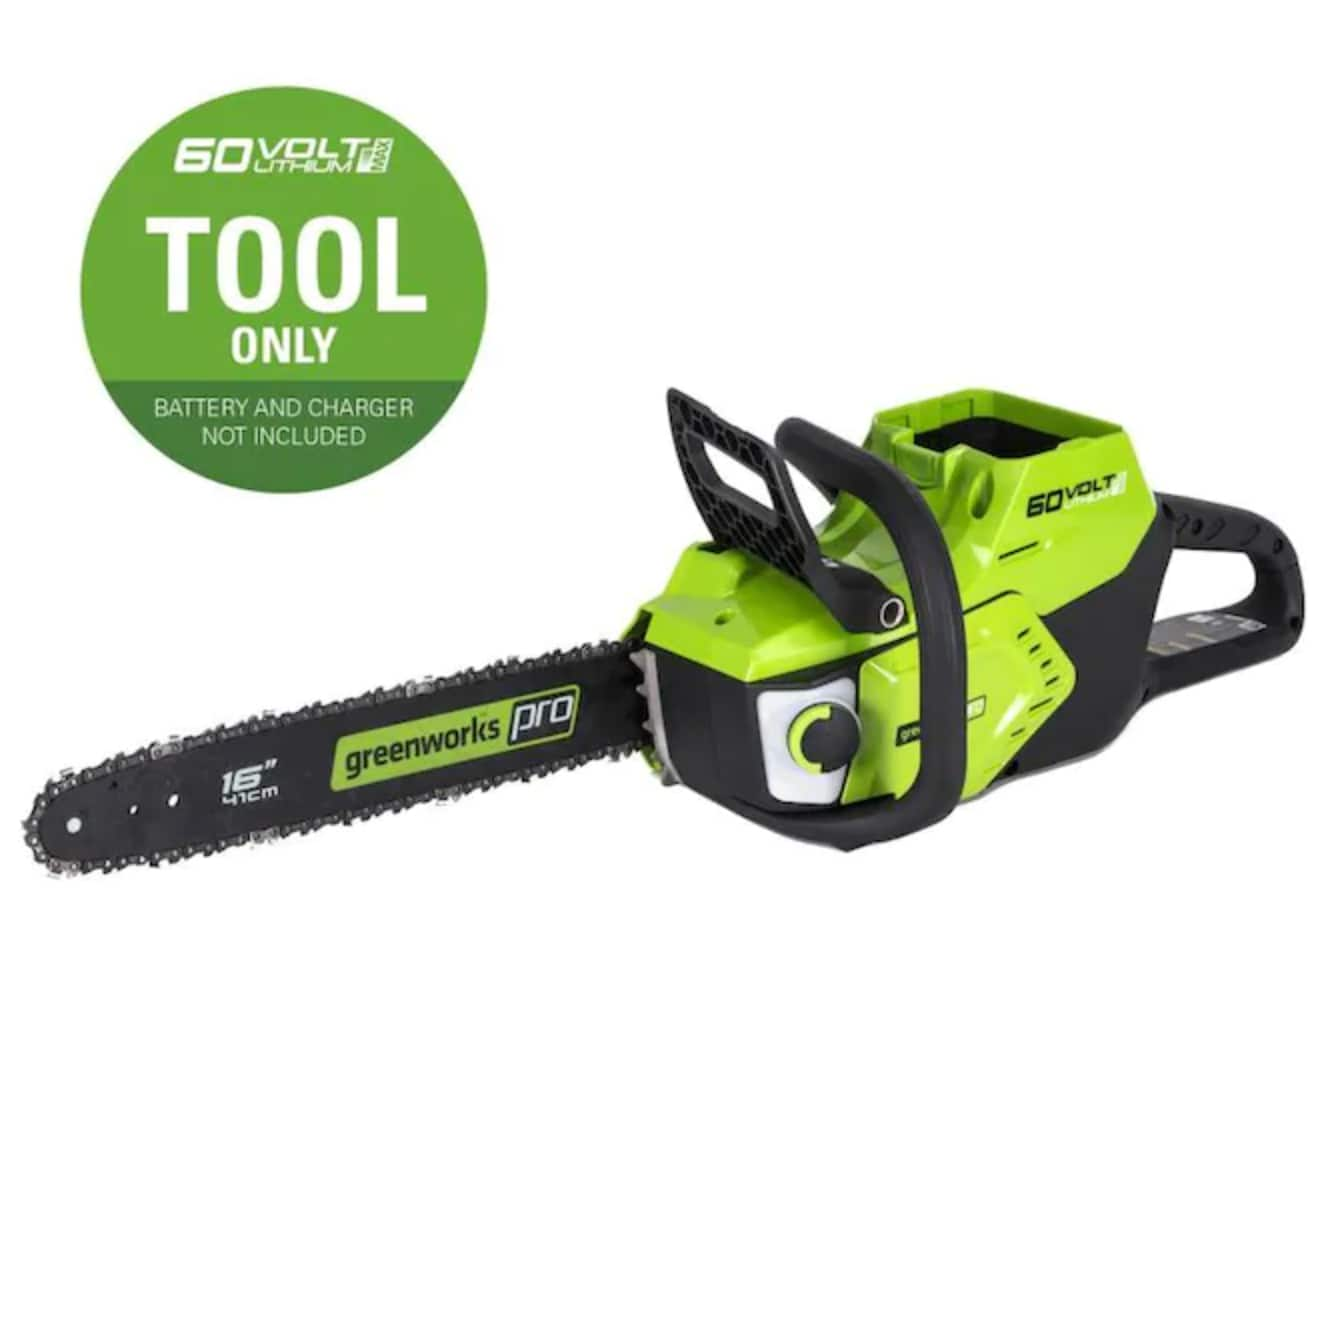 60V Greenworks Pro 16in Cordless Electric Chainsaw $80 YMMV